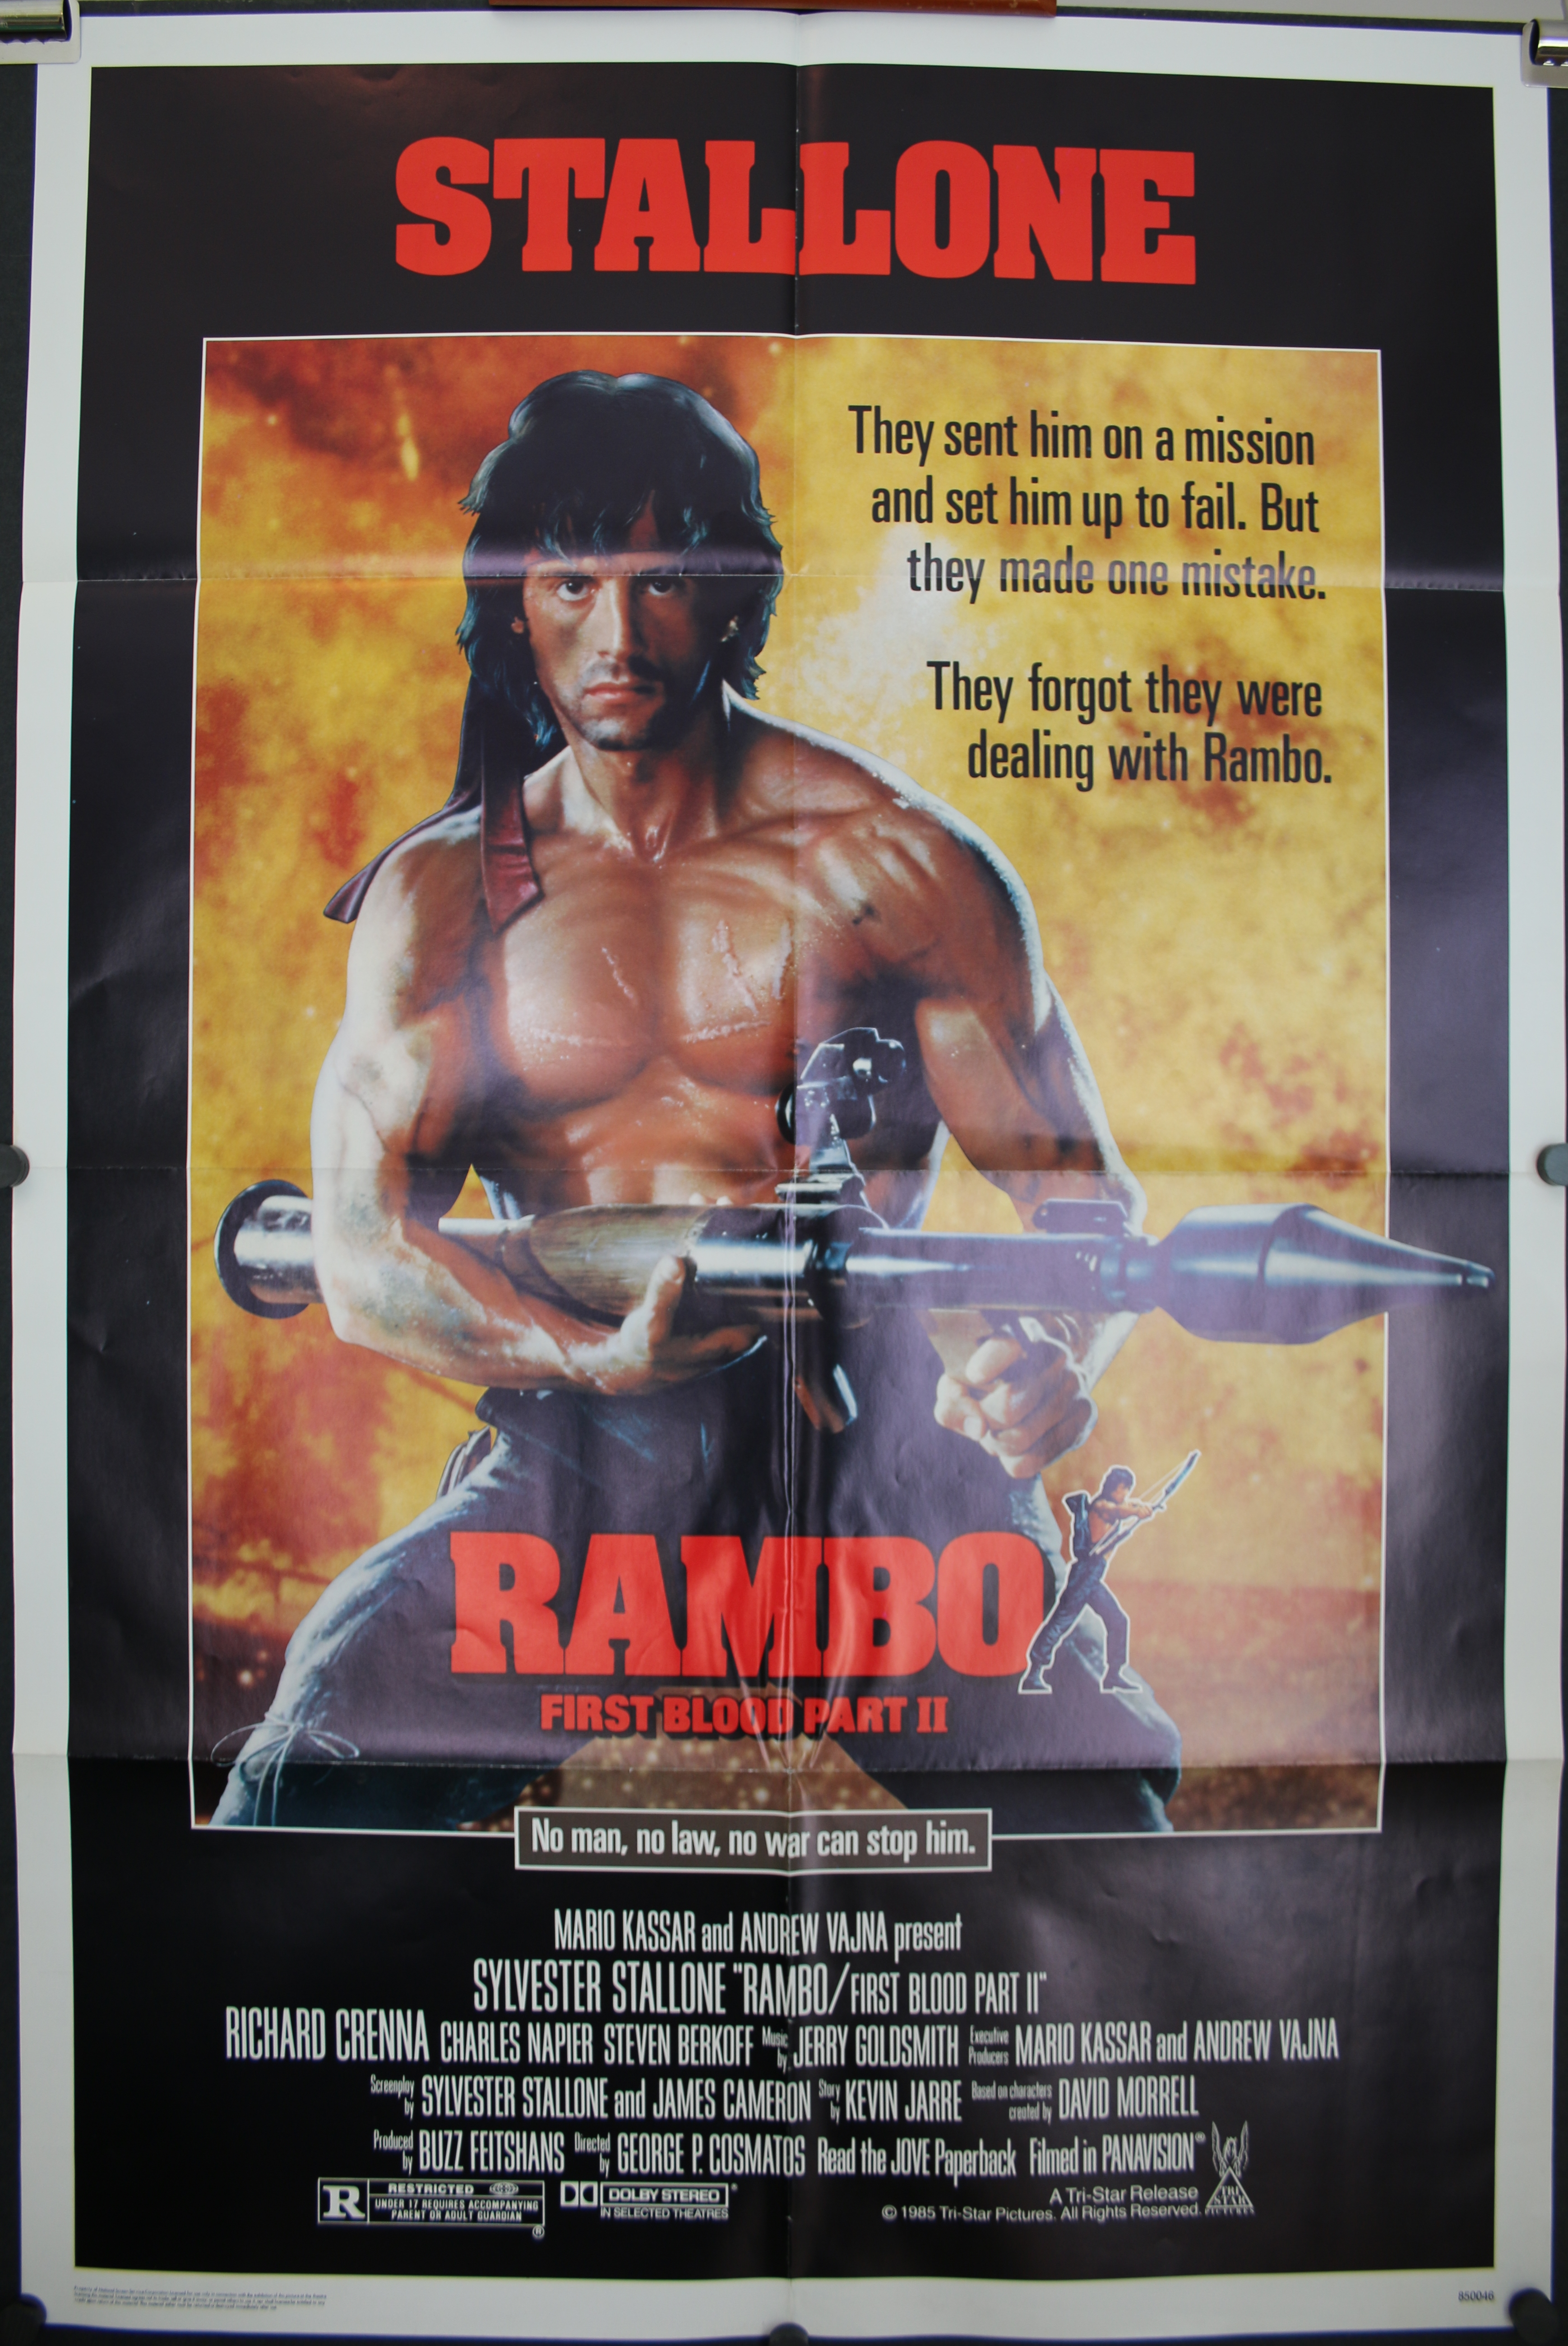 Sylvester Stallone movie posters at movie poster warehouse